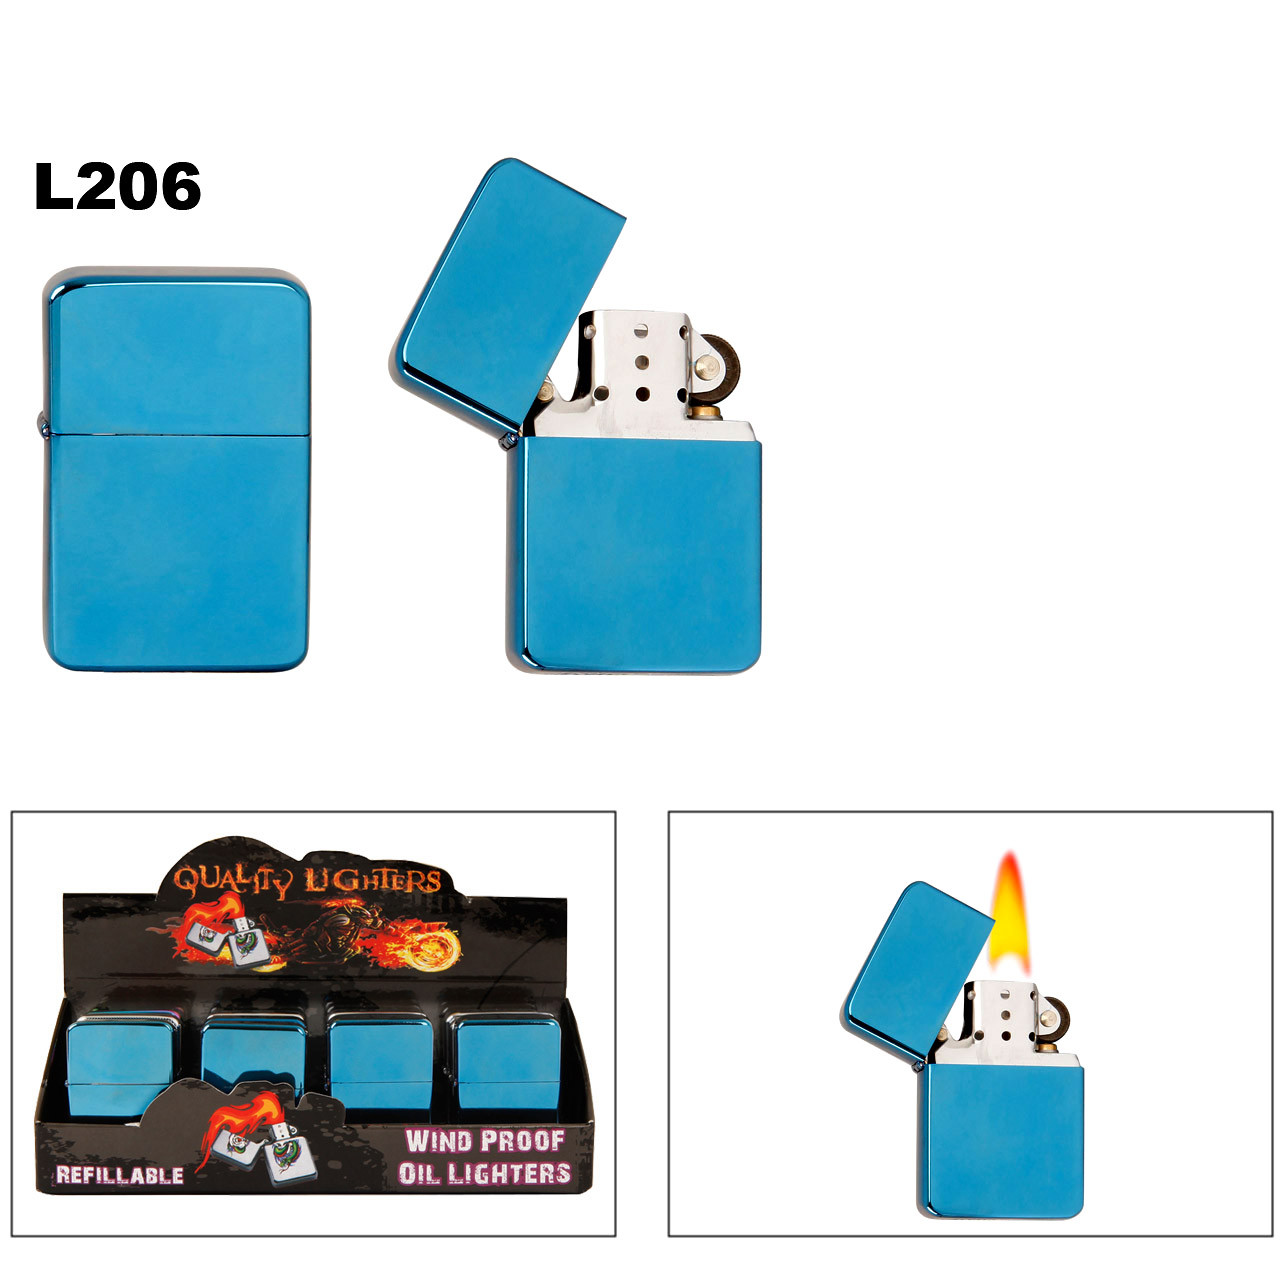 Metallic Blue Finish ~ Lighter Fluid NOT Included L206 (12 pcs.)